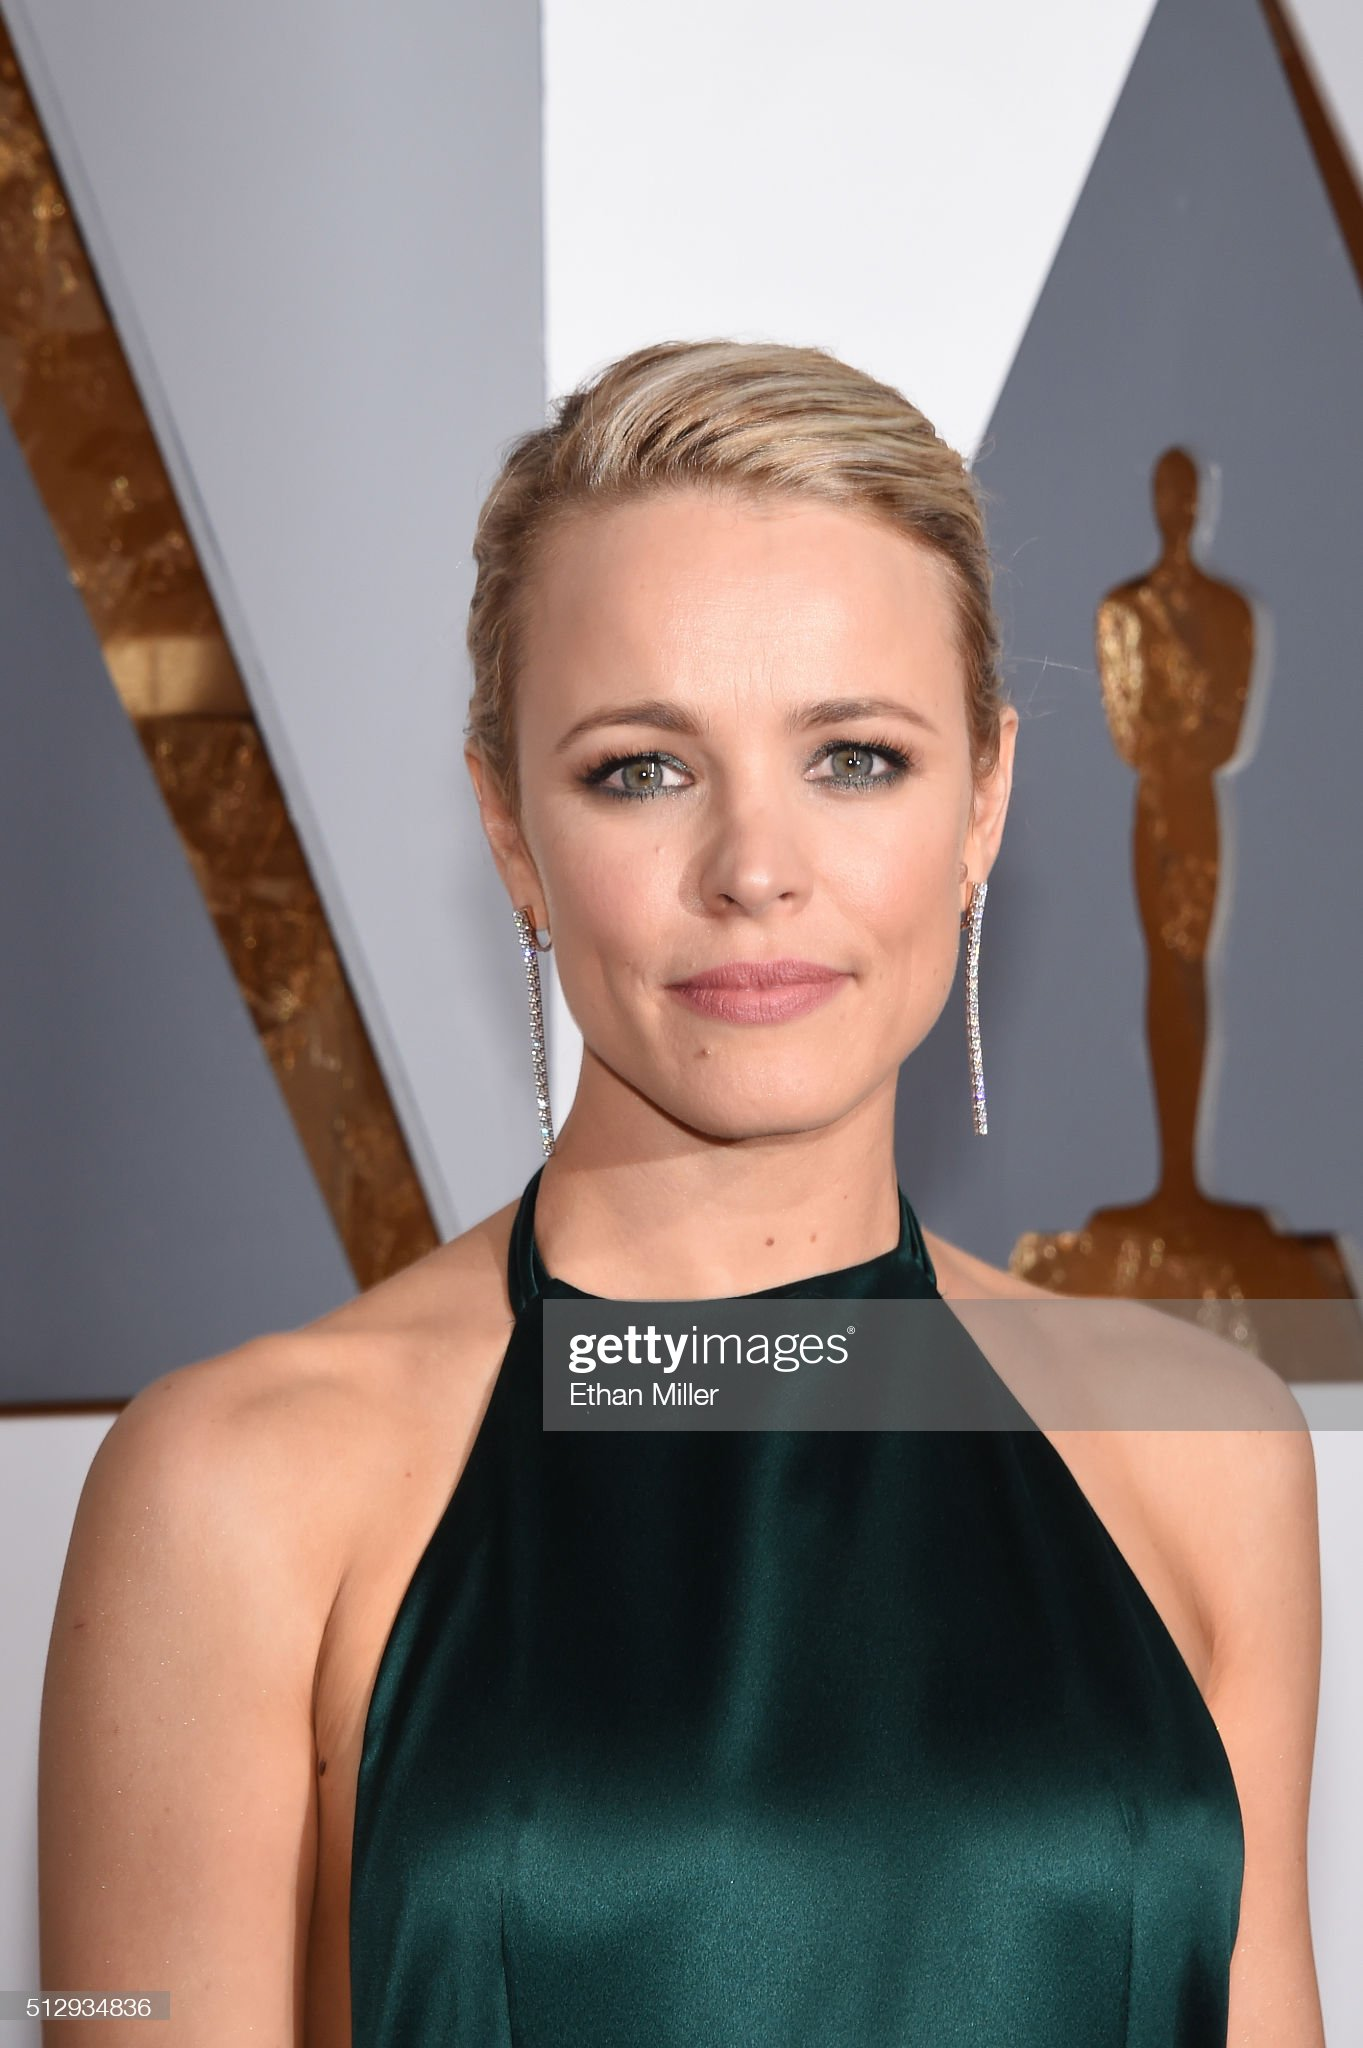 Ojos azules - personas famosas con los ojos de color AZUL Actress-rachel-mcadams-attends-the-88th-annual-academy-awards-at-picture-id512934836?s=2048x2048